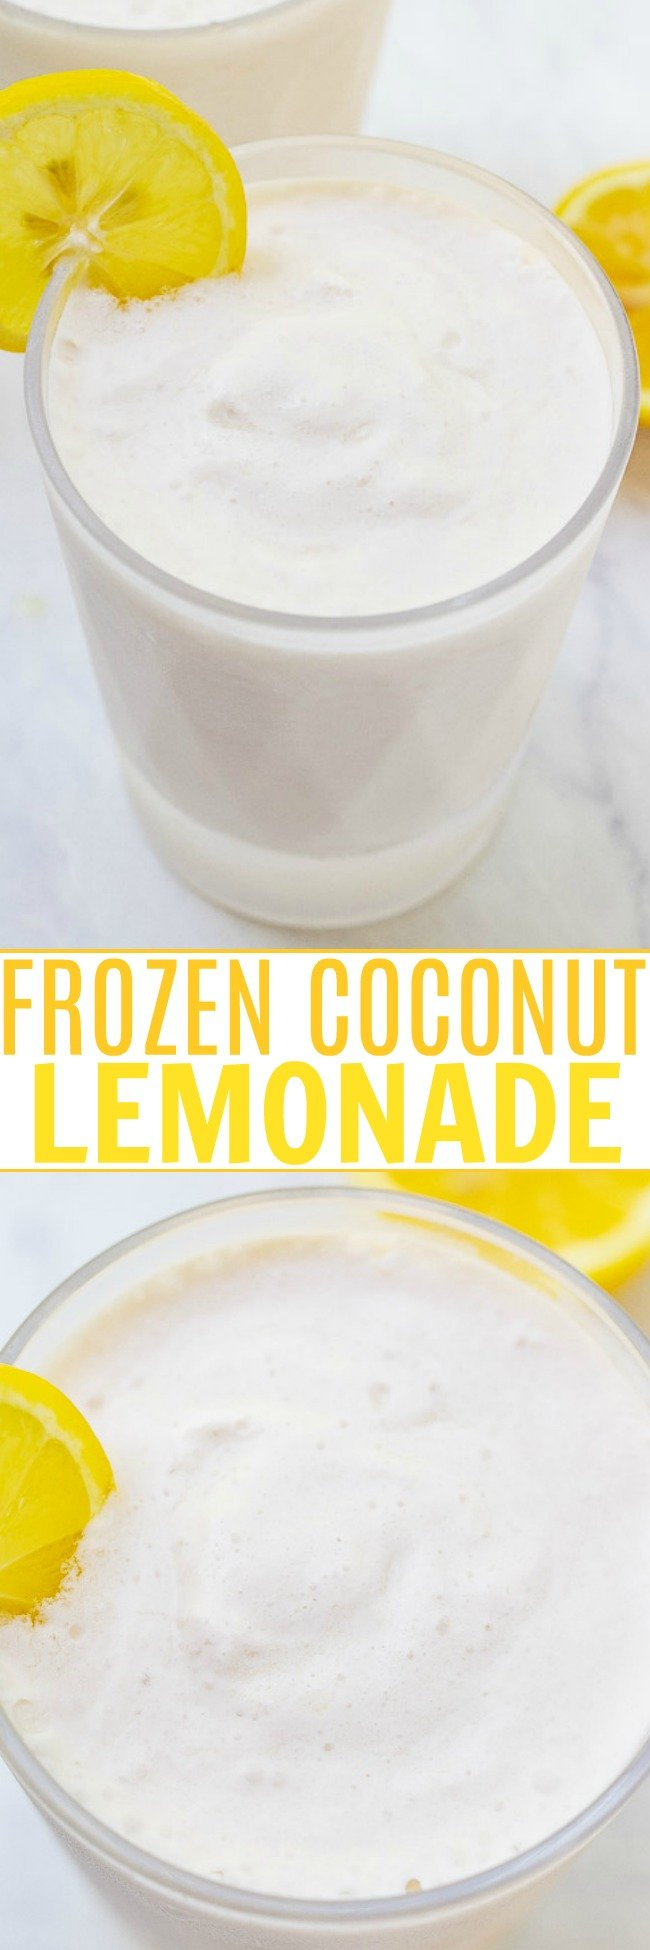 Frozen Coconut Lemonade - The EASIEST THREE ingredient whipped lemonade recipe that's creamy and refreshing with the PERFECT pop of tart lemon flavor!! You can easily spike it for an adults-only batch that's perfect for summer days!!